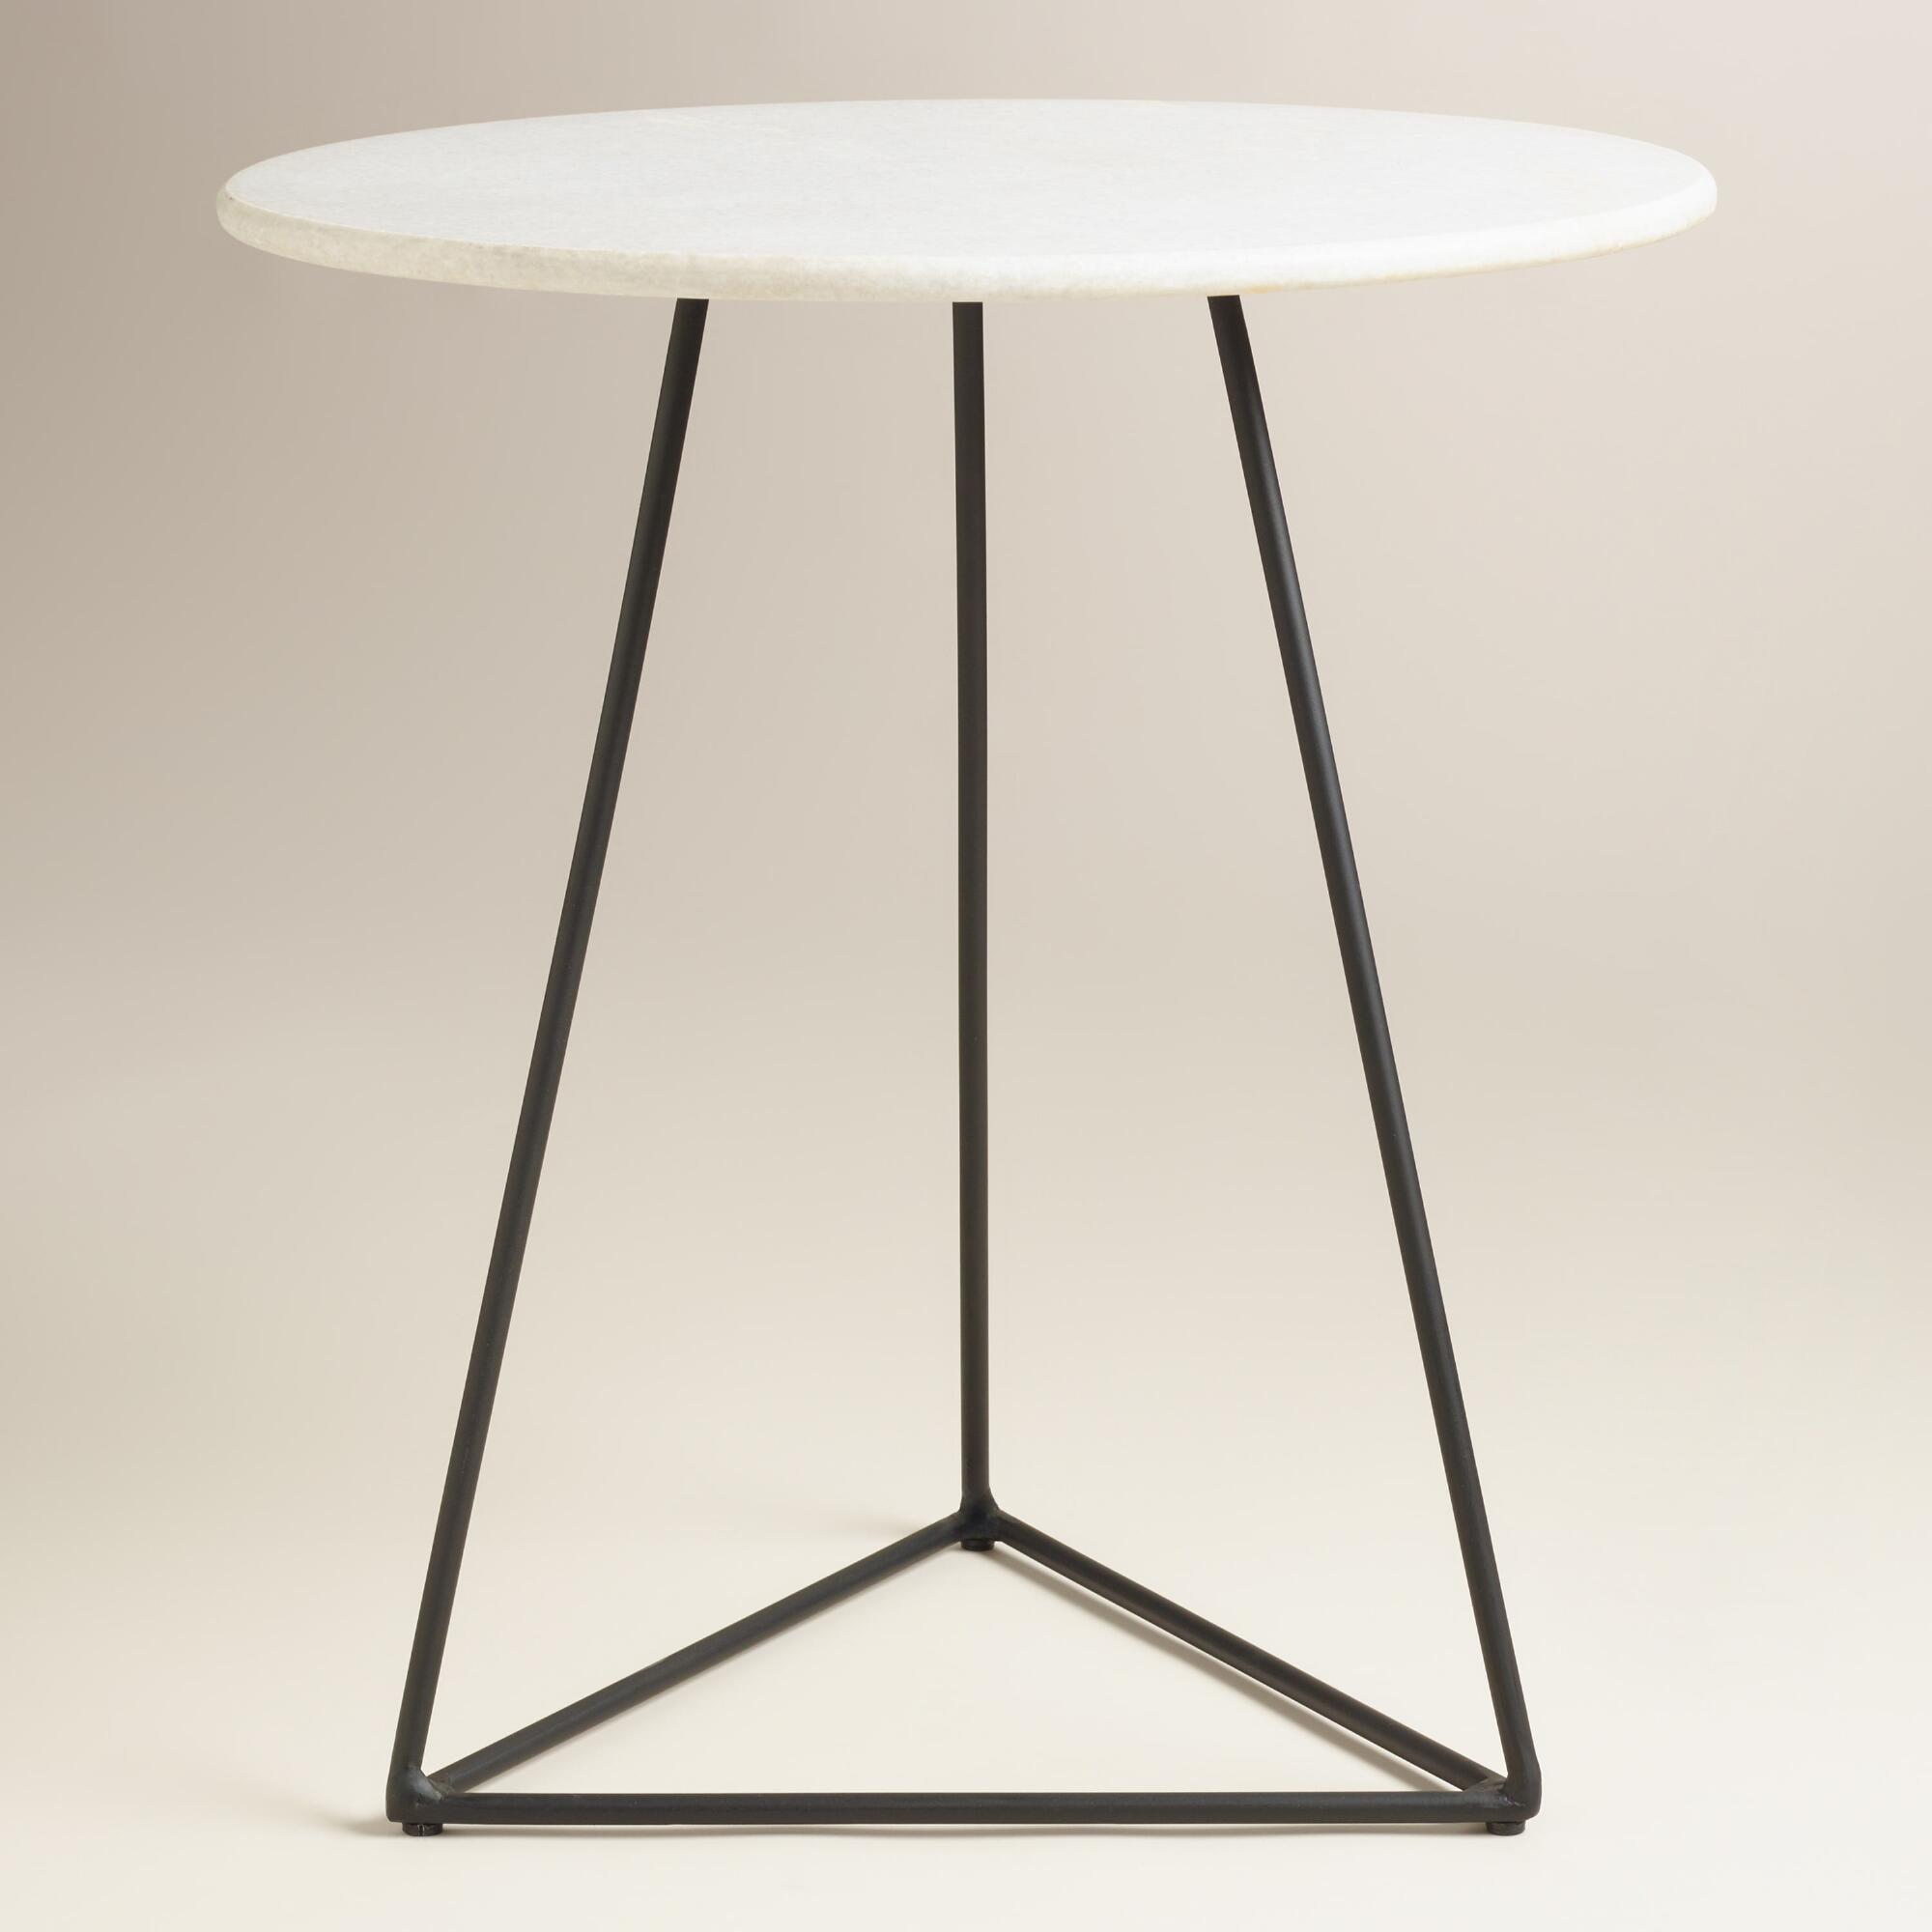 thin side tables living room probably outrageous cool white marble amazing accent table with world market top and marbles end dog cage grain coffee west elm black pedestal outdoor